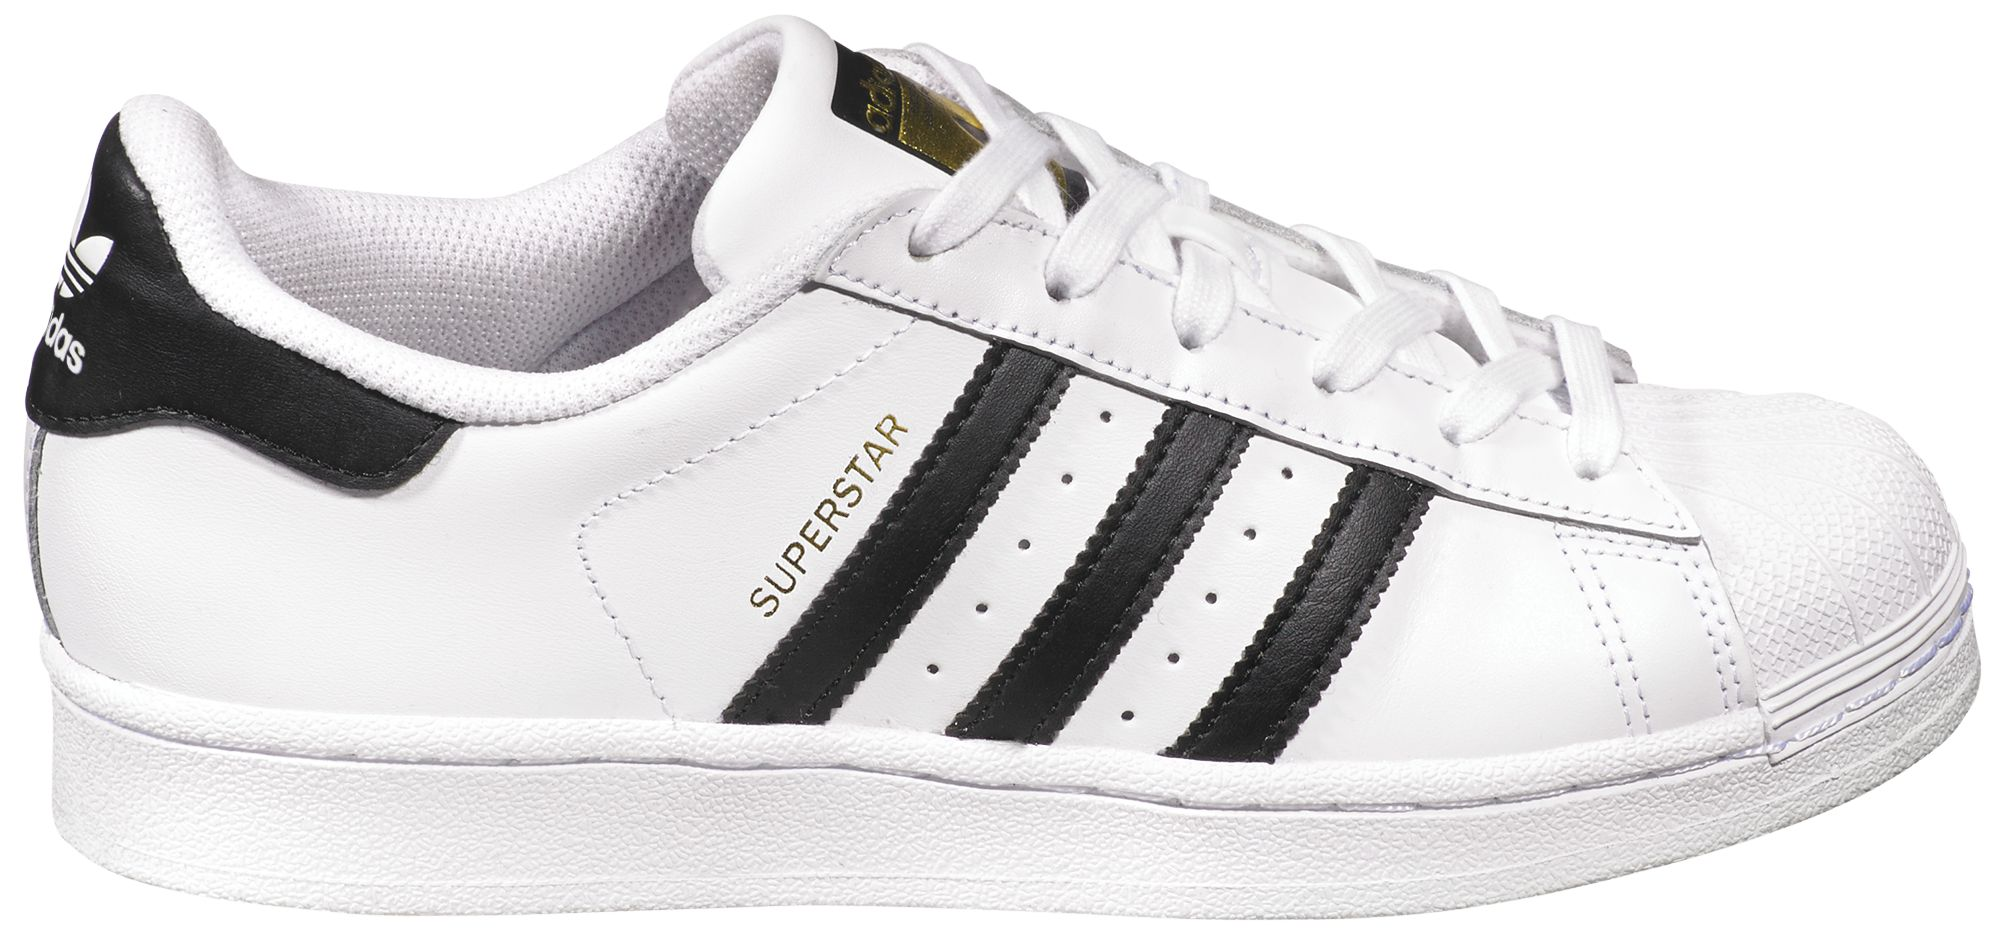 adidas superstar shoes womens cheap